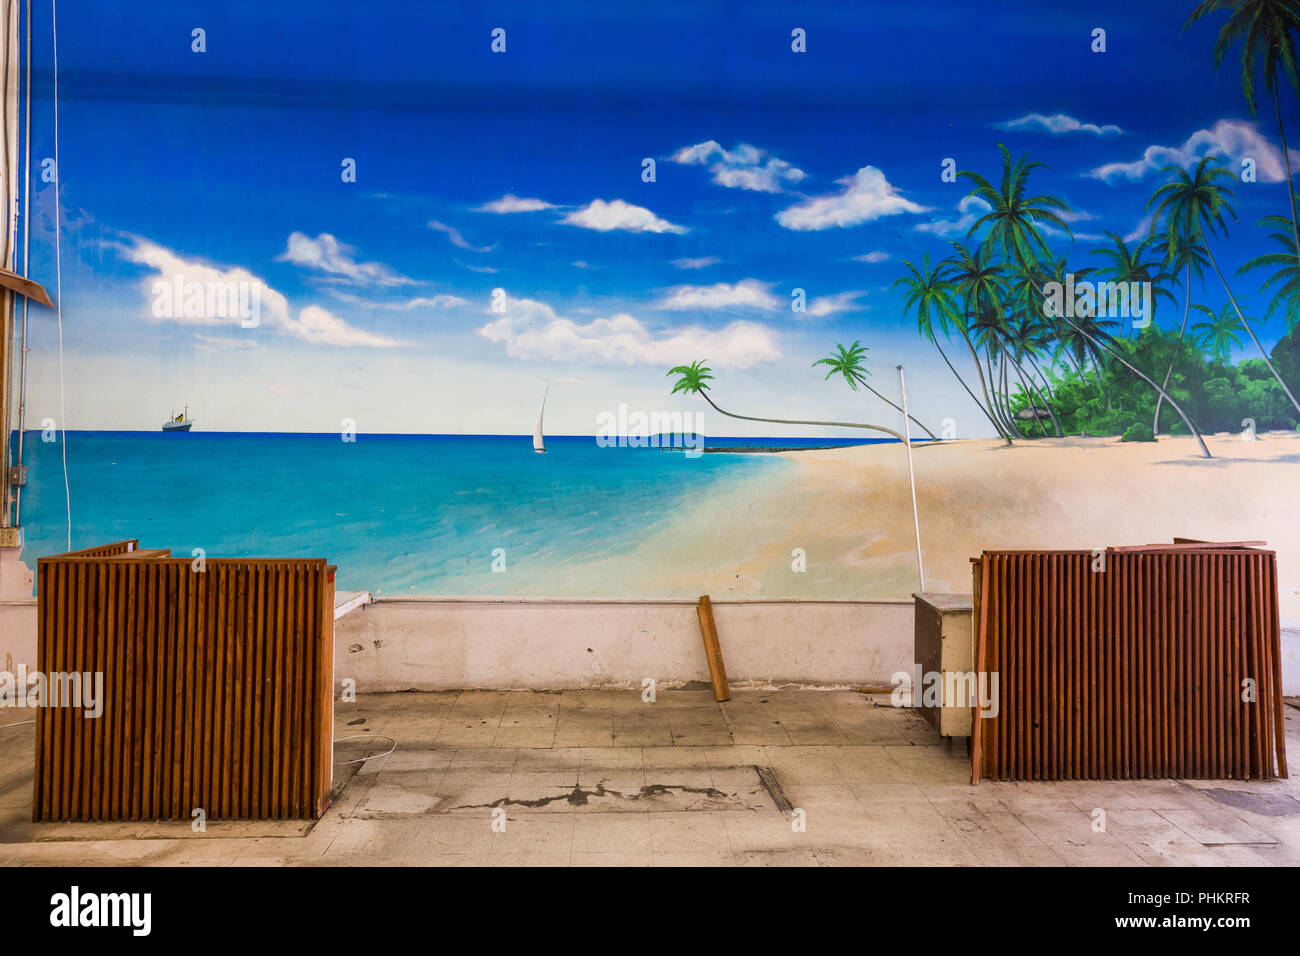 Ugly office space with large mural depicting beautiful tropical beach scene. - Stock Image